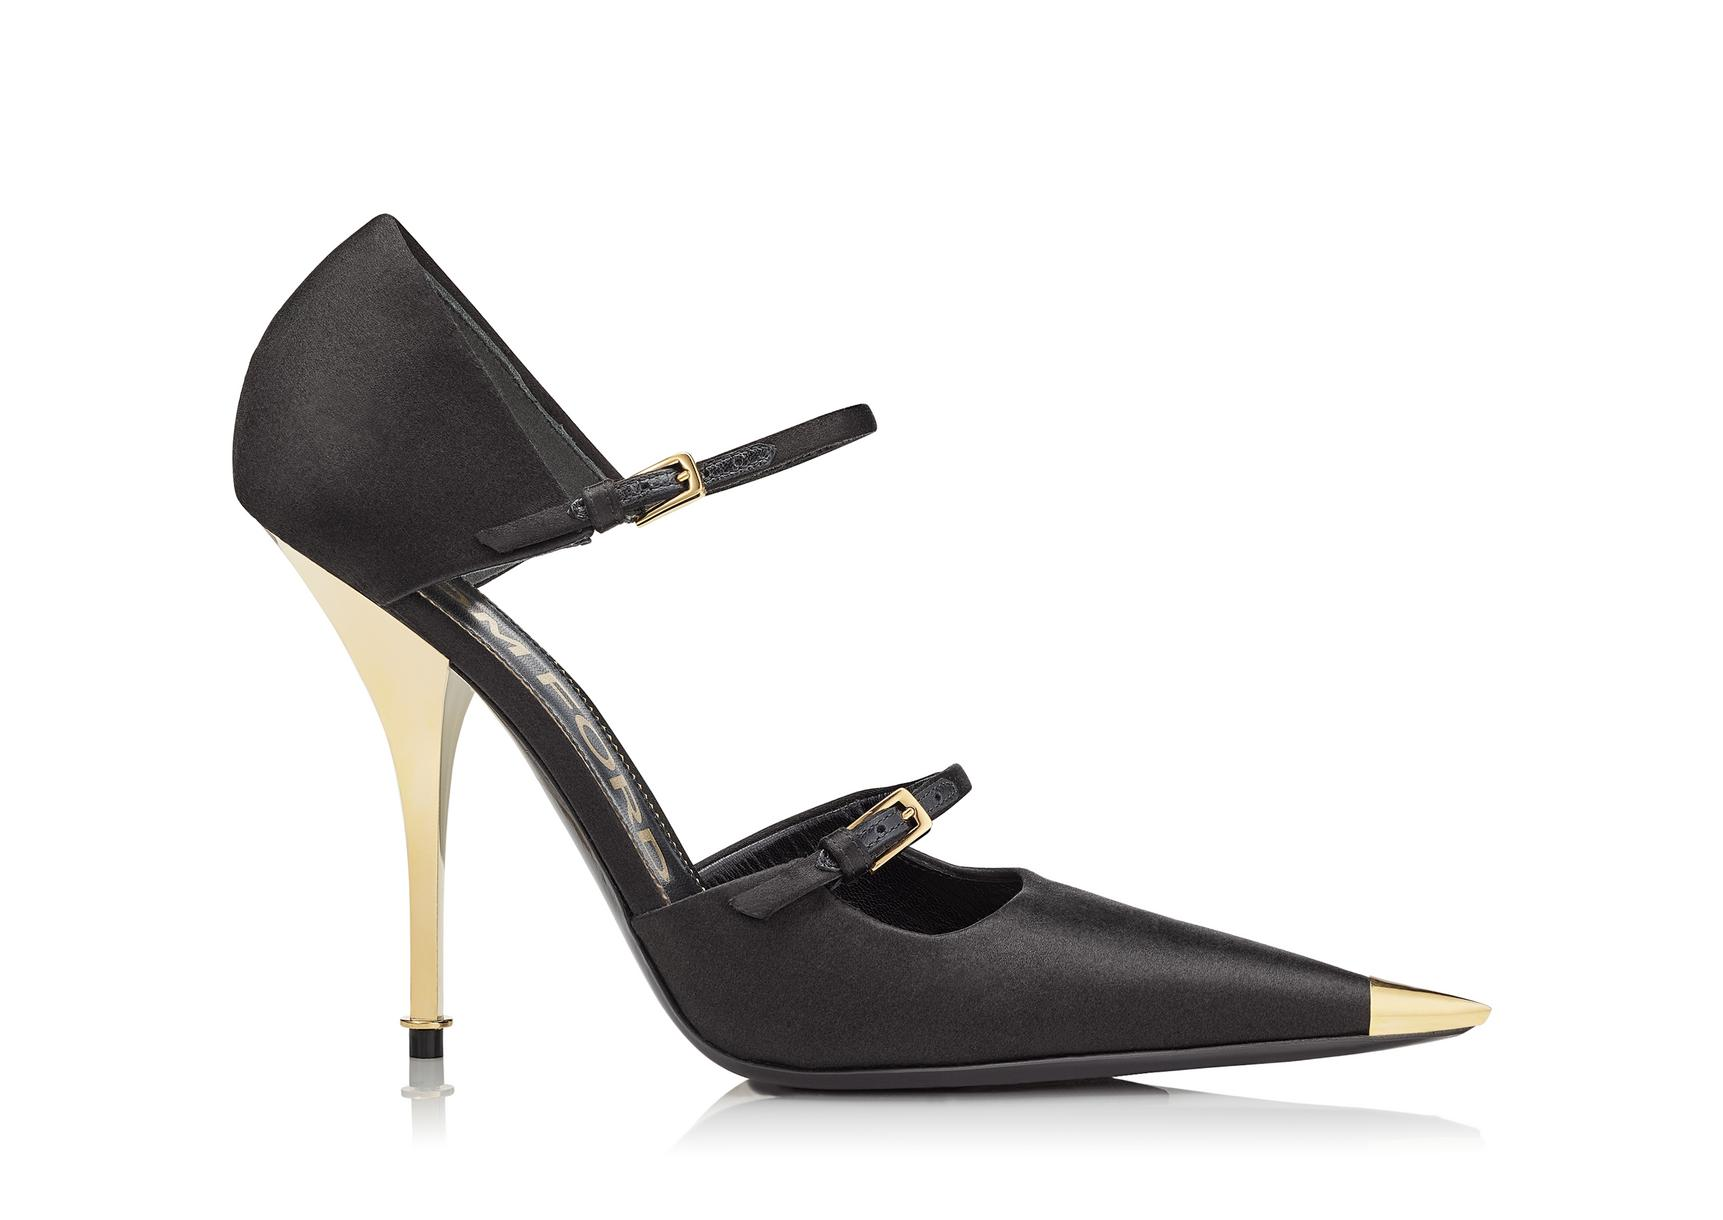 Mary Jane Pumps by Tom Ford, available on tomford.com for $745 Kylie Jenner Shoes Exact Product